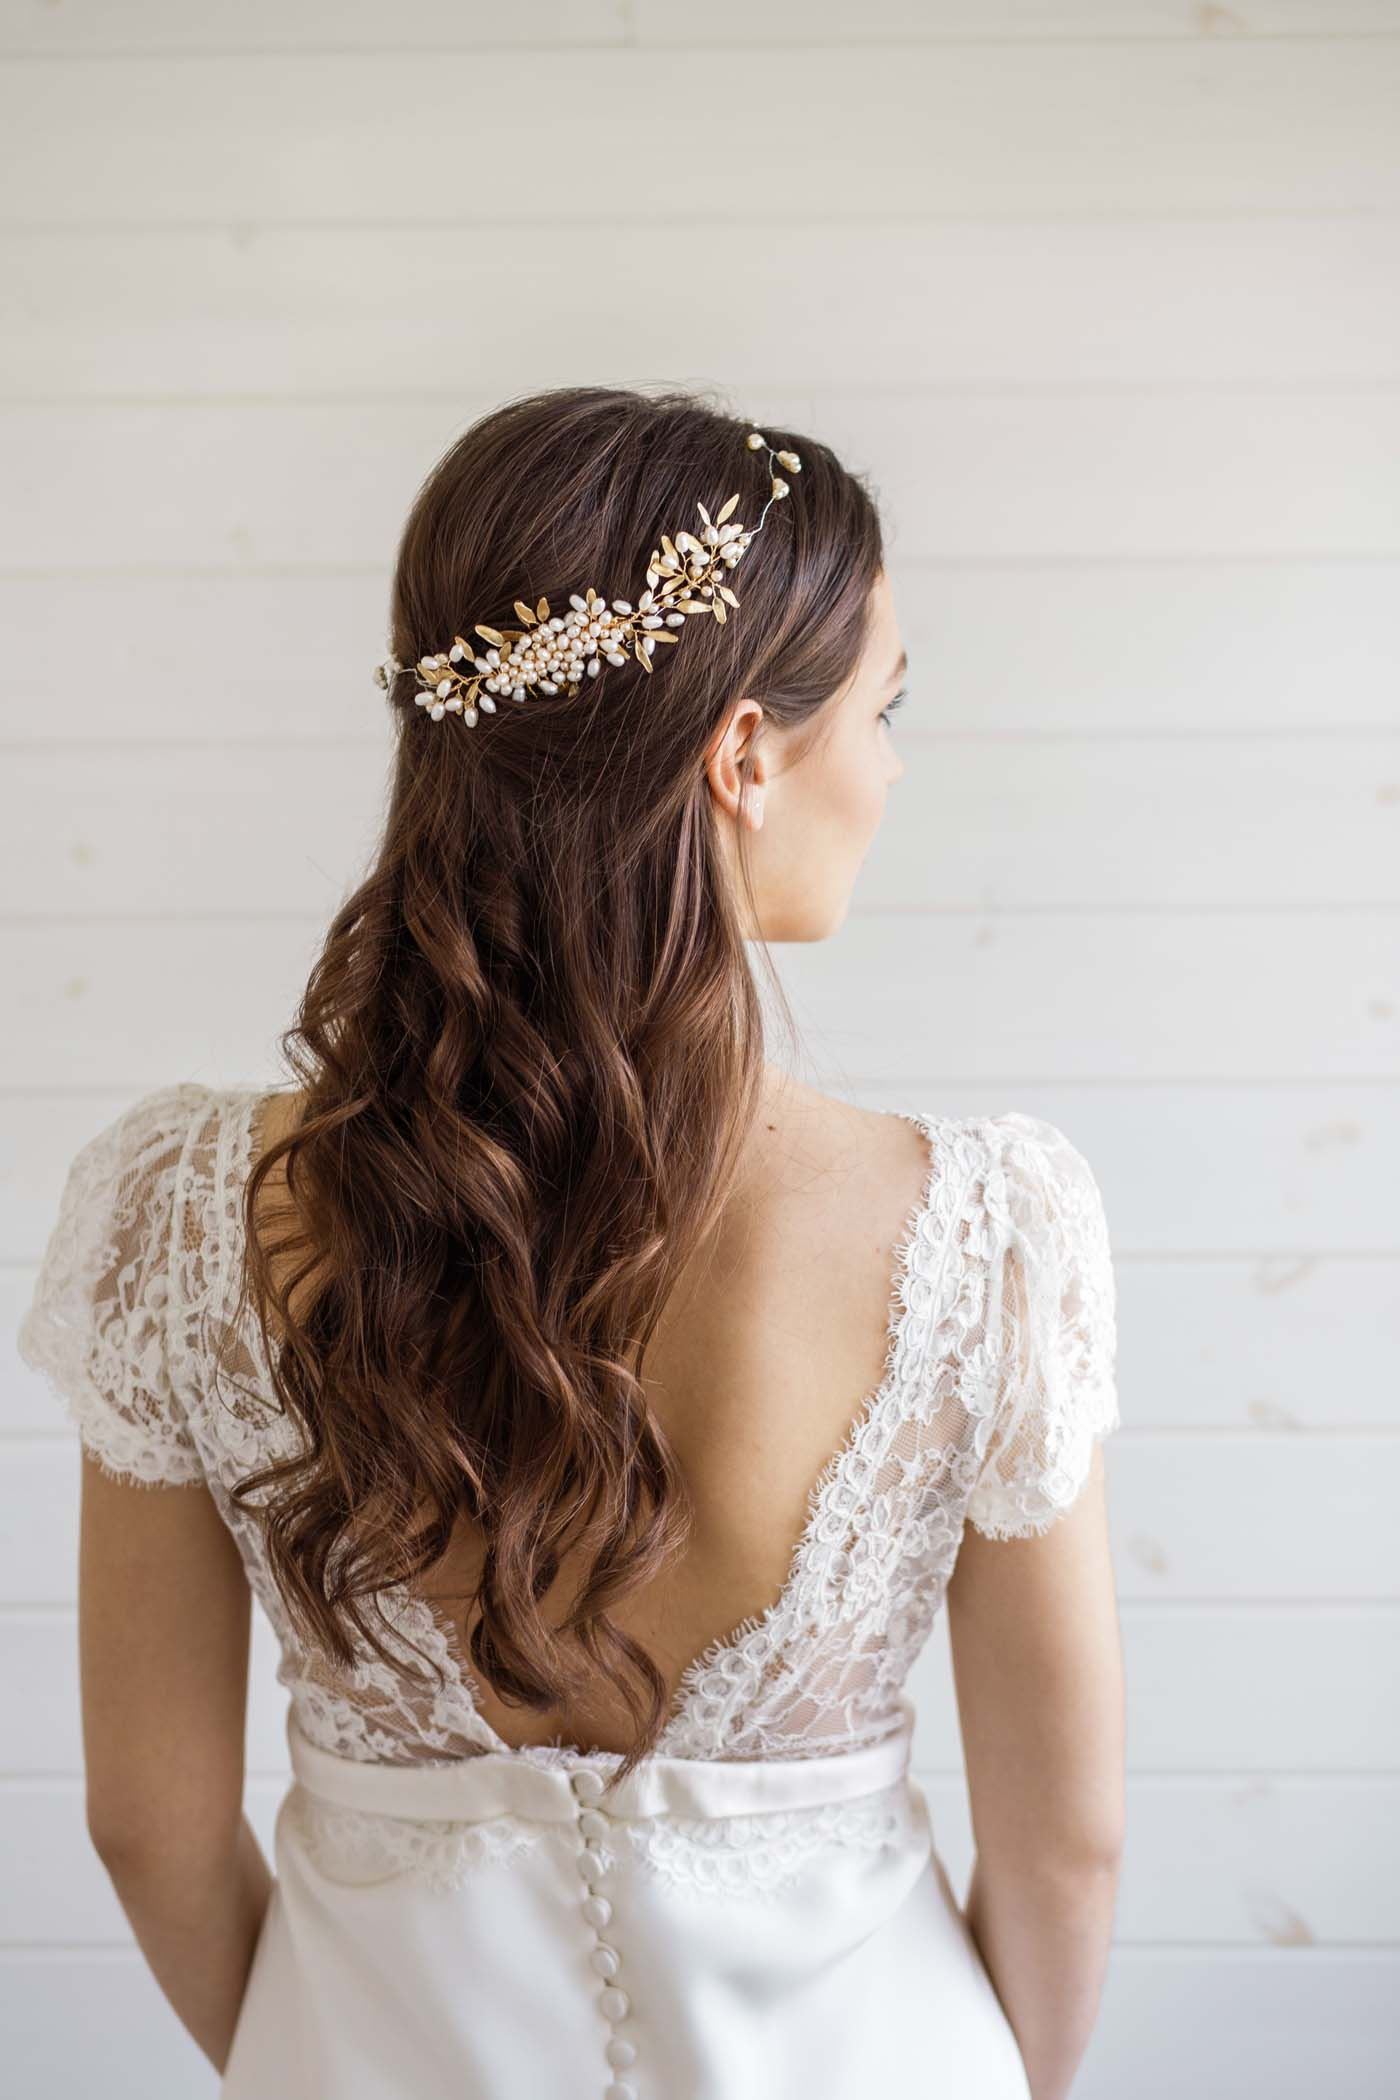 Wedding Hair And Makeup Ct Jonathan Edwards Winery: Wedding Hair Accessories